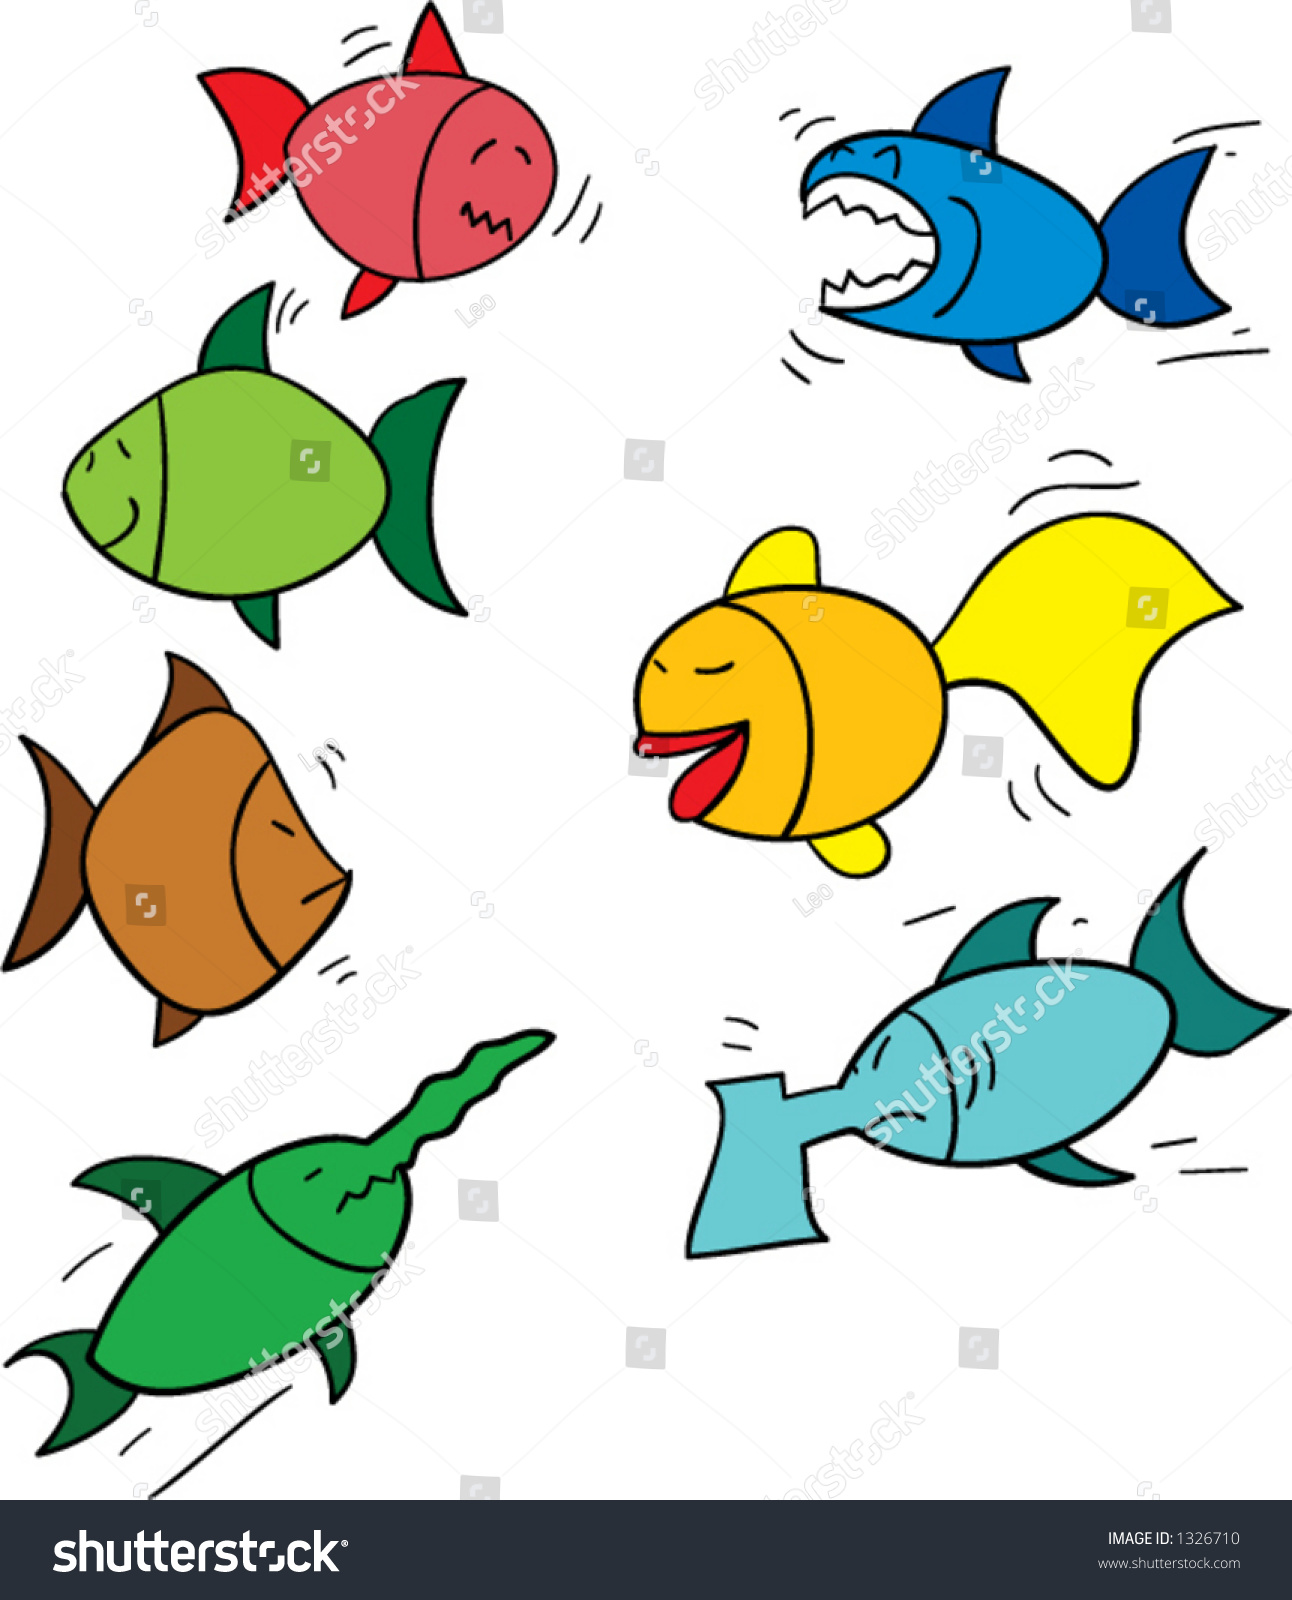 Seven funny looking cartoon fish redfish stock vector for What are the seven fishes